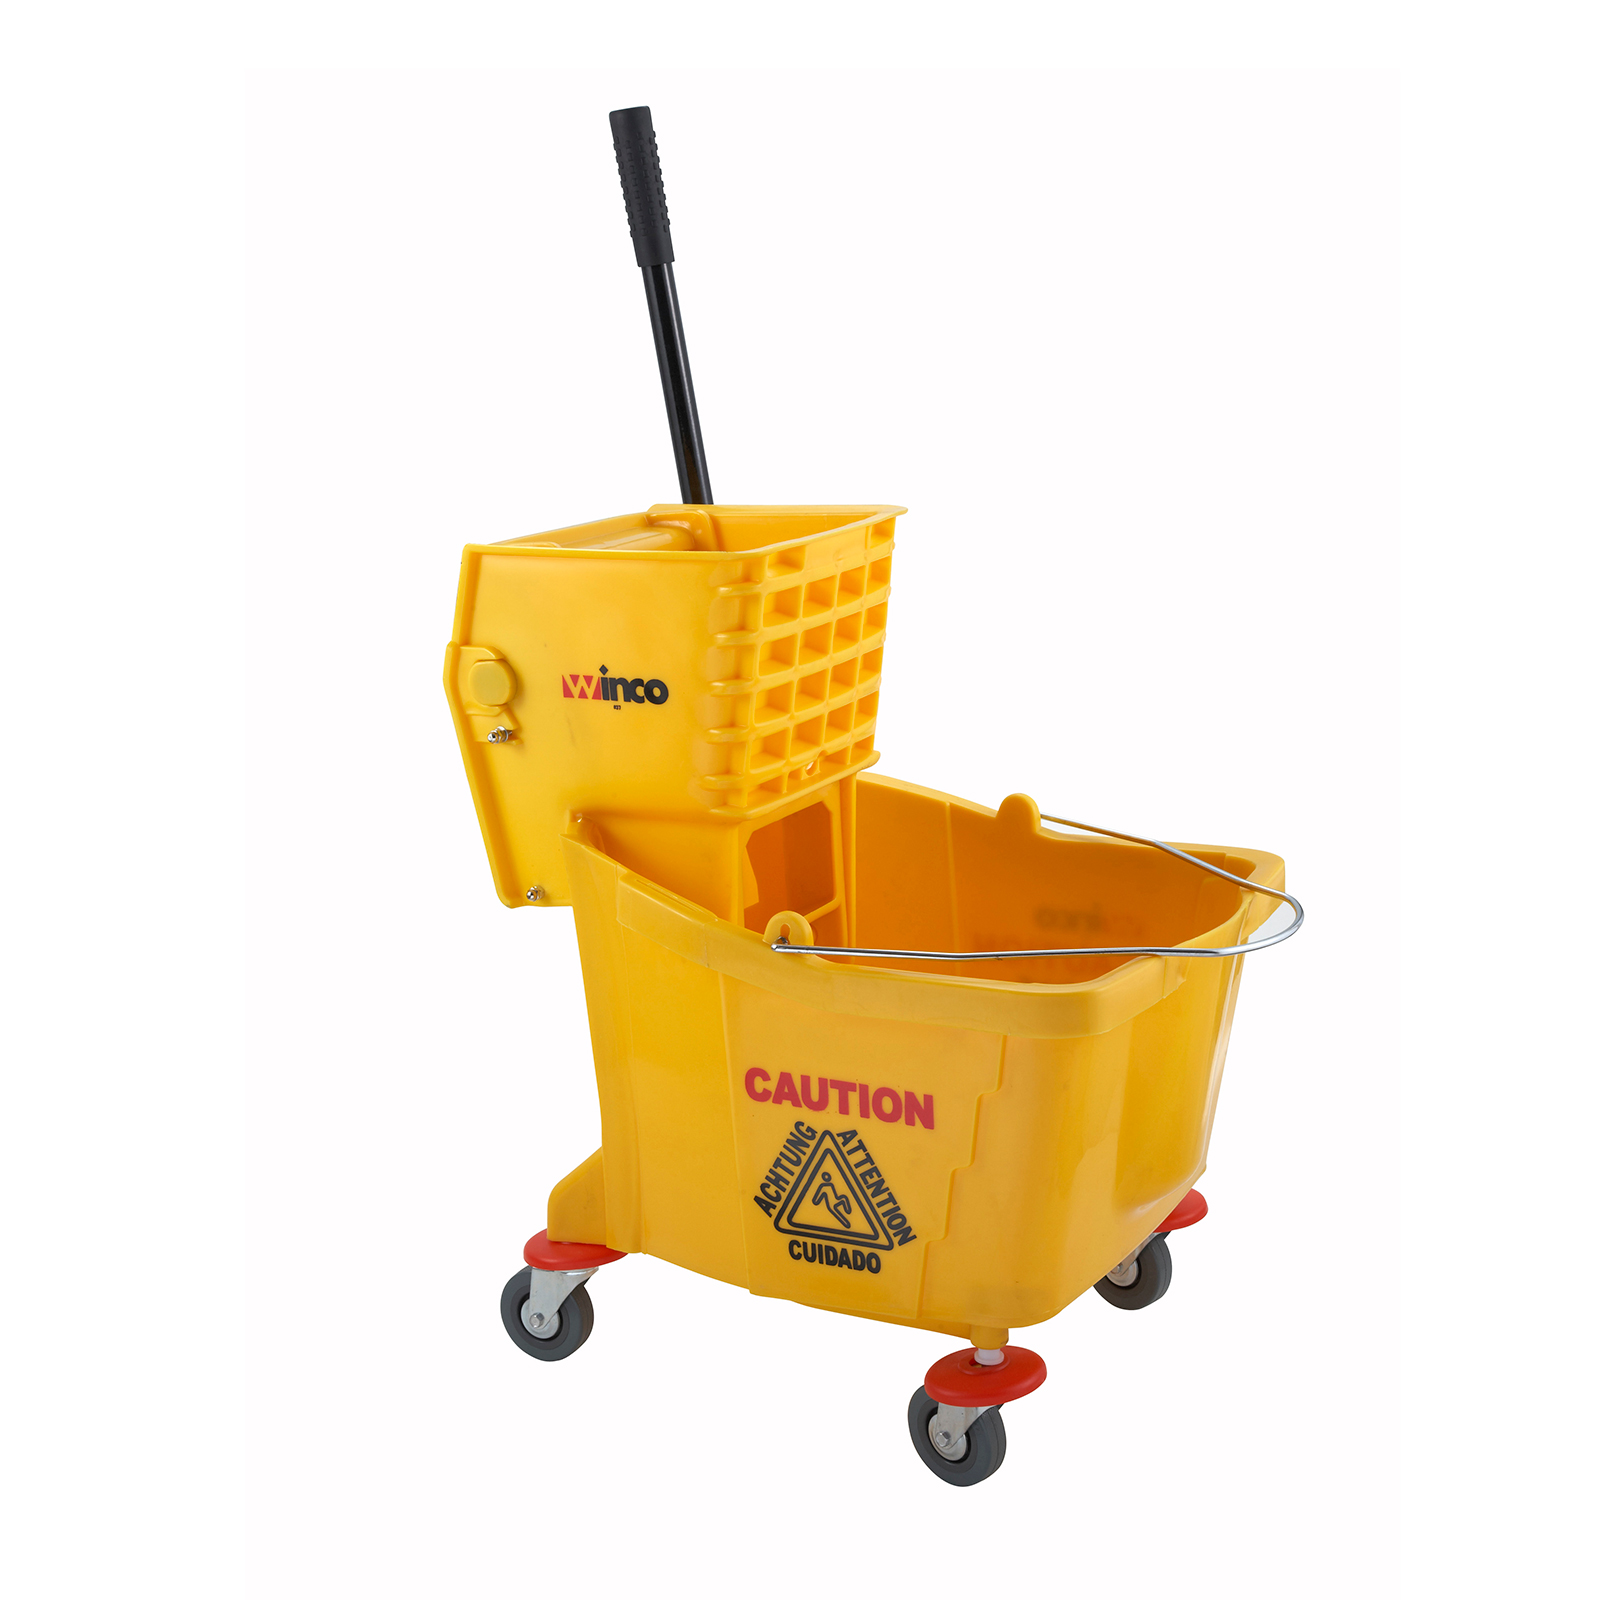 Winco MPB-36 mop bucket wringer combination